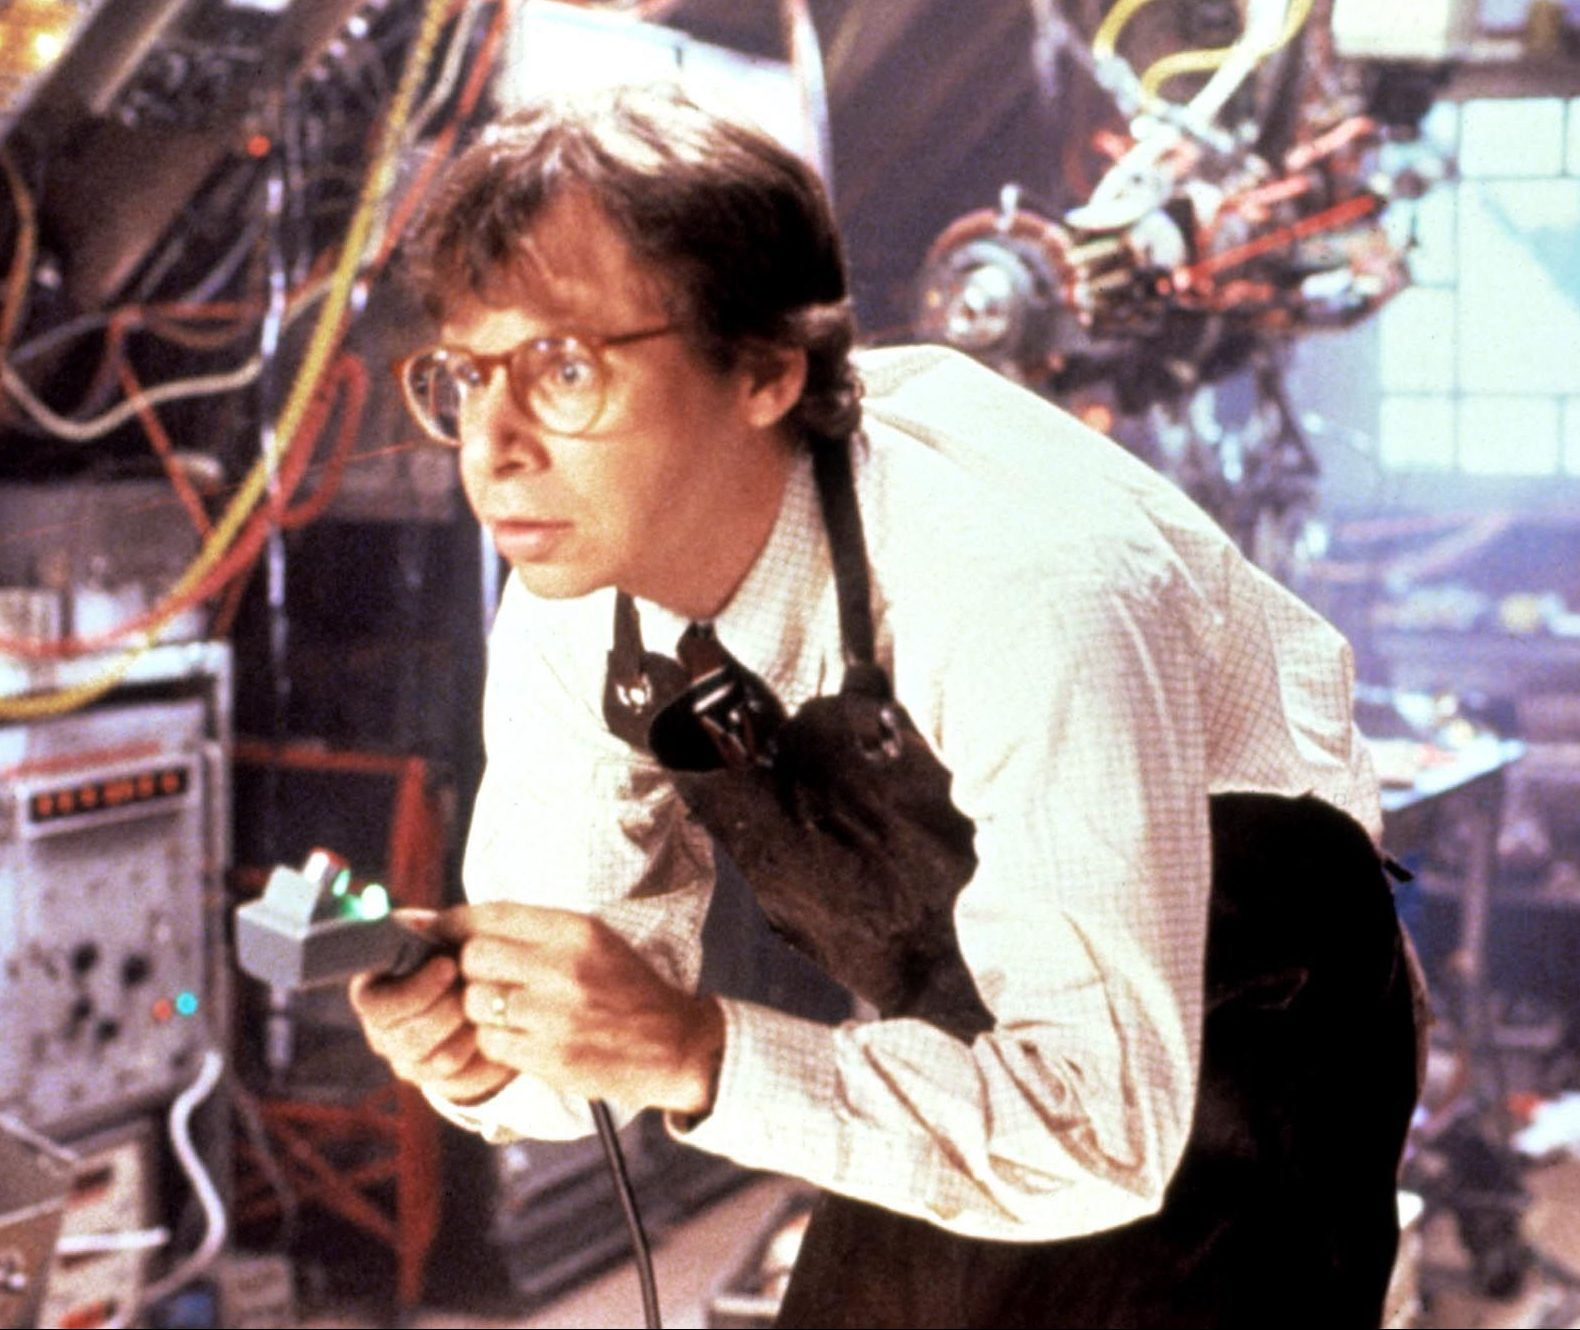 rick moranis shrunk e1619604137663 20 Things You Probably Didn't Know About Rick Moranis